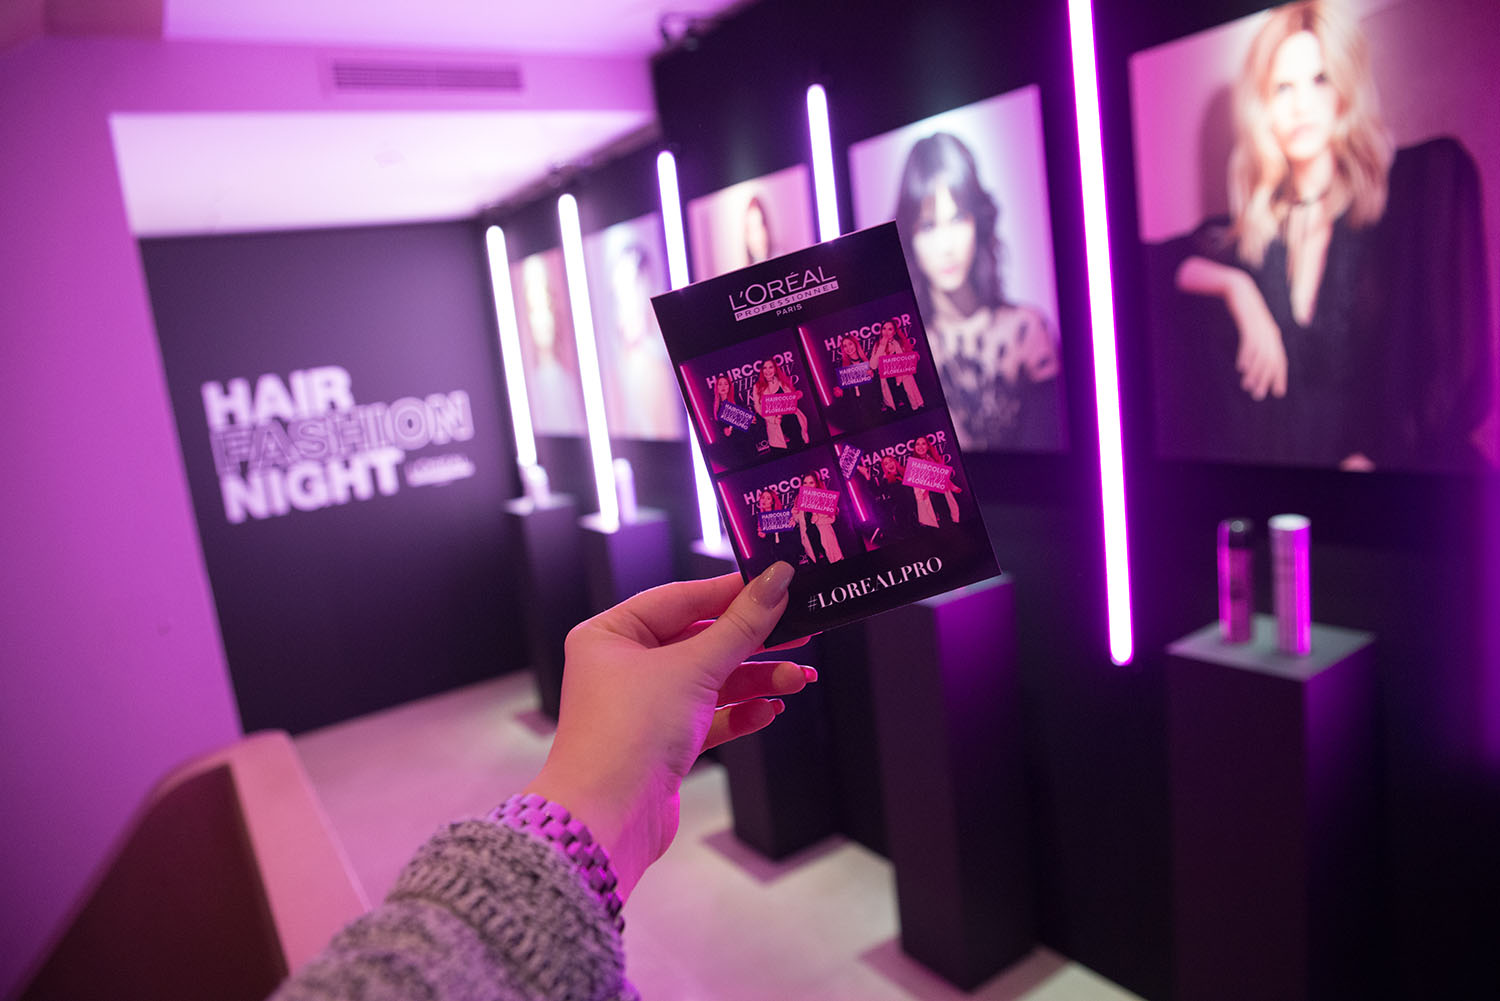 L'Oréal Professionnel's event in Paris